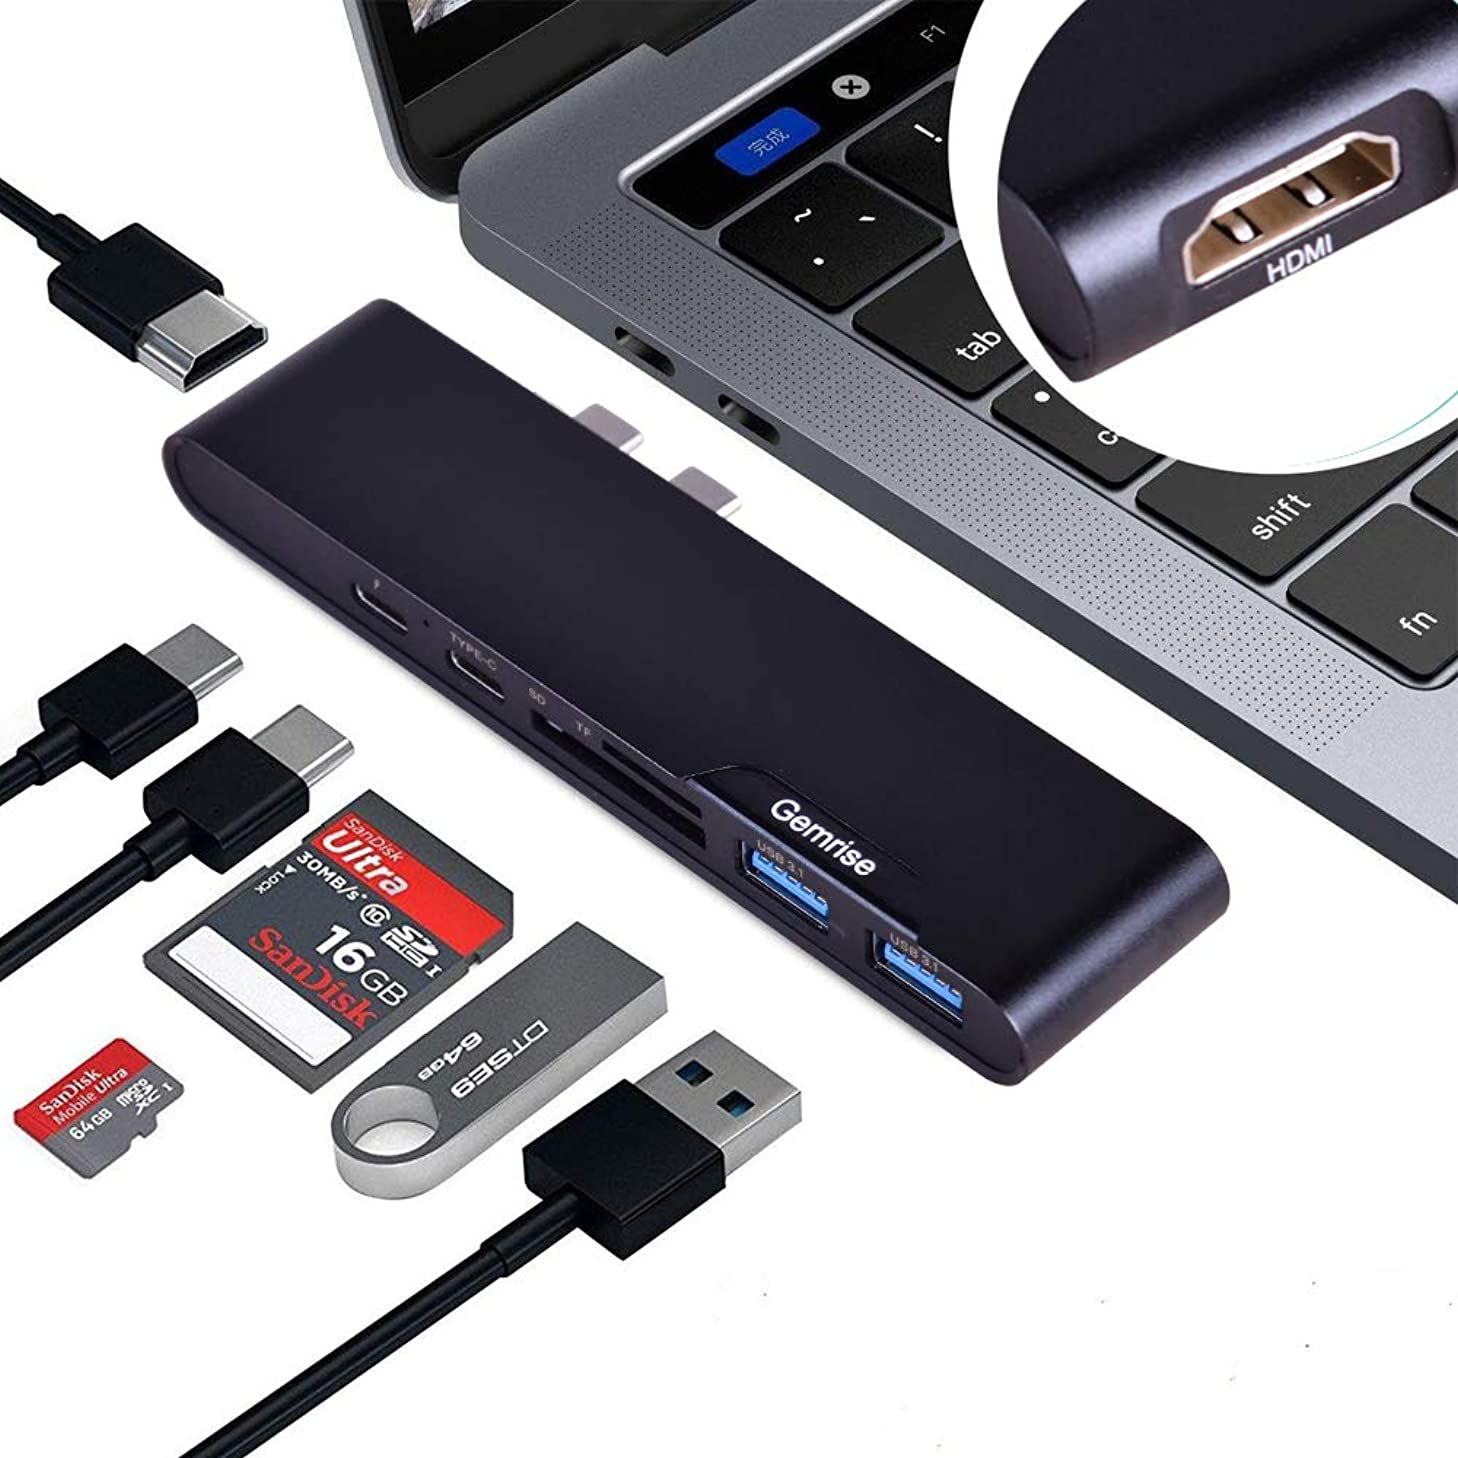 USB C Hub, 7-in-1 USB C Adapter, with 5K USB C to HDMI, for MacBook Pro 2017/2018/2019